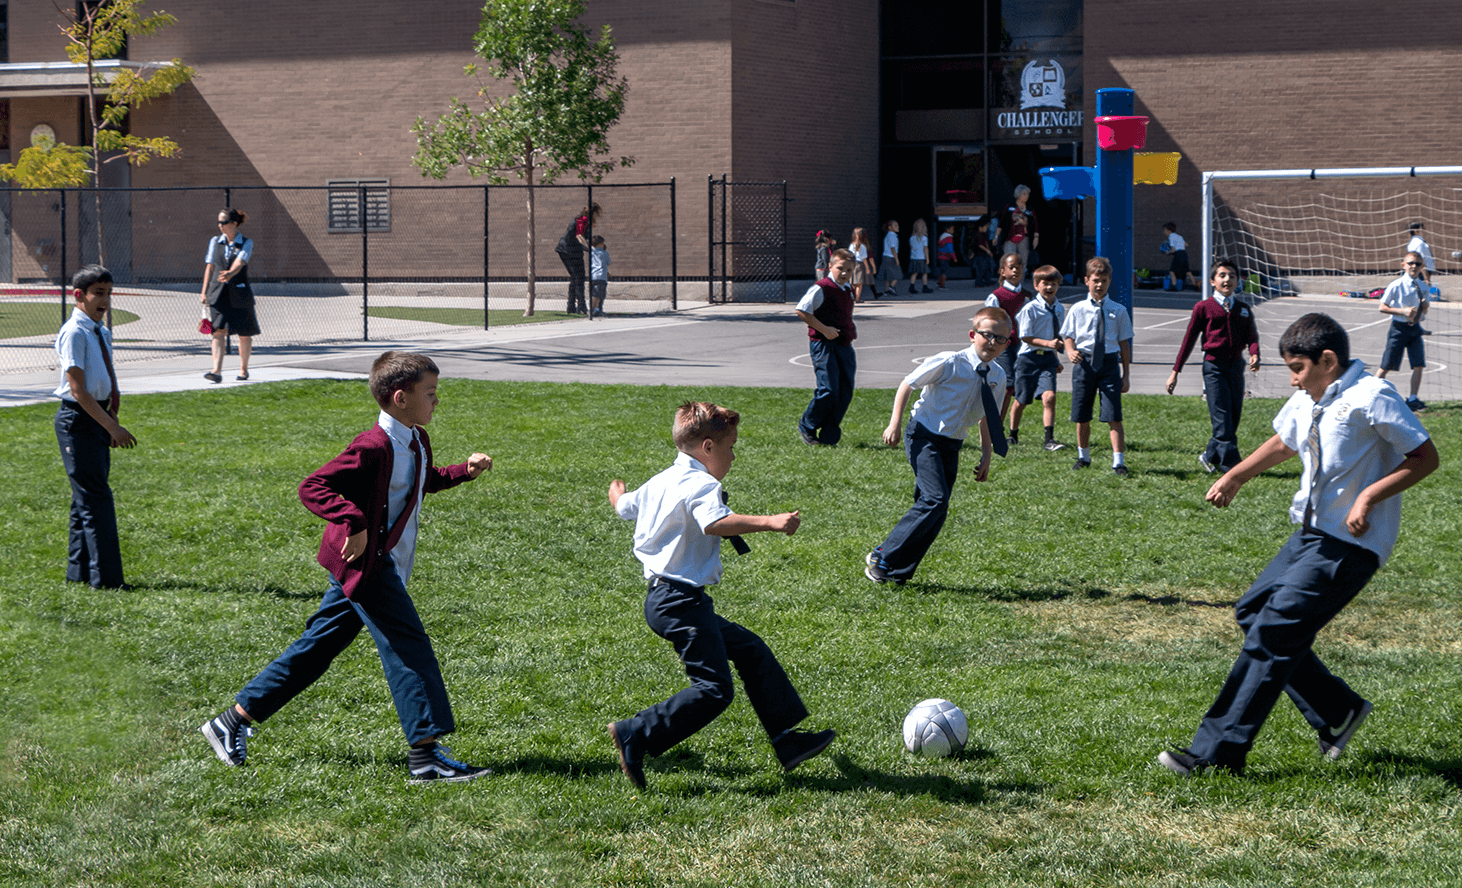 Elementary School Playground | Challenger School - Salt Lake | Private School In Salt Lake City, Utah